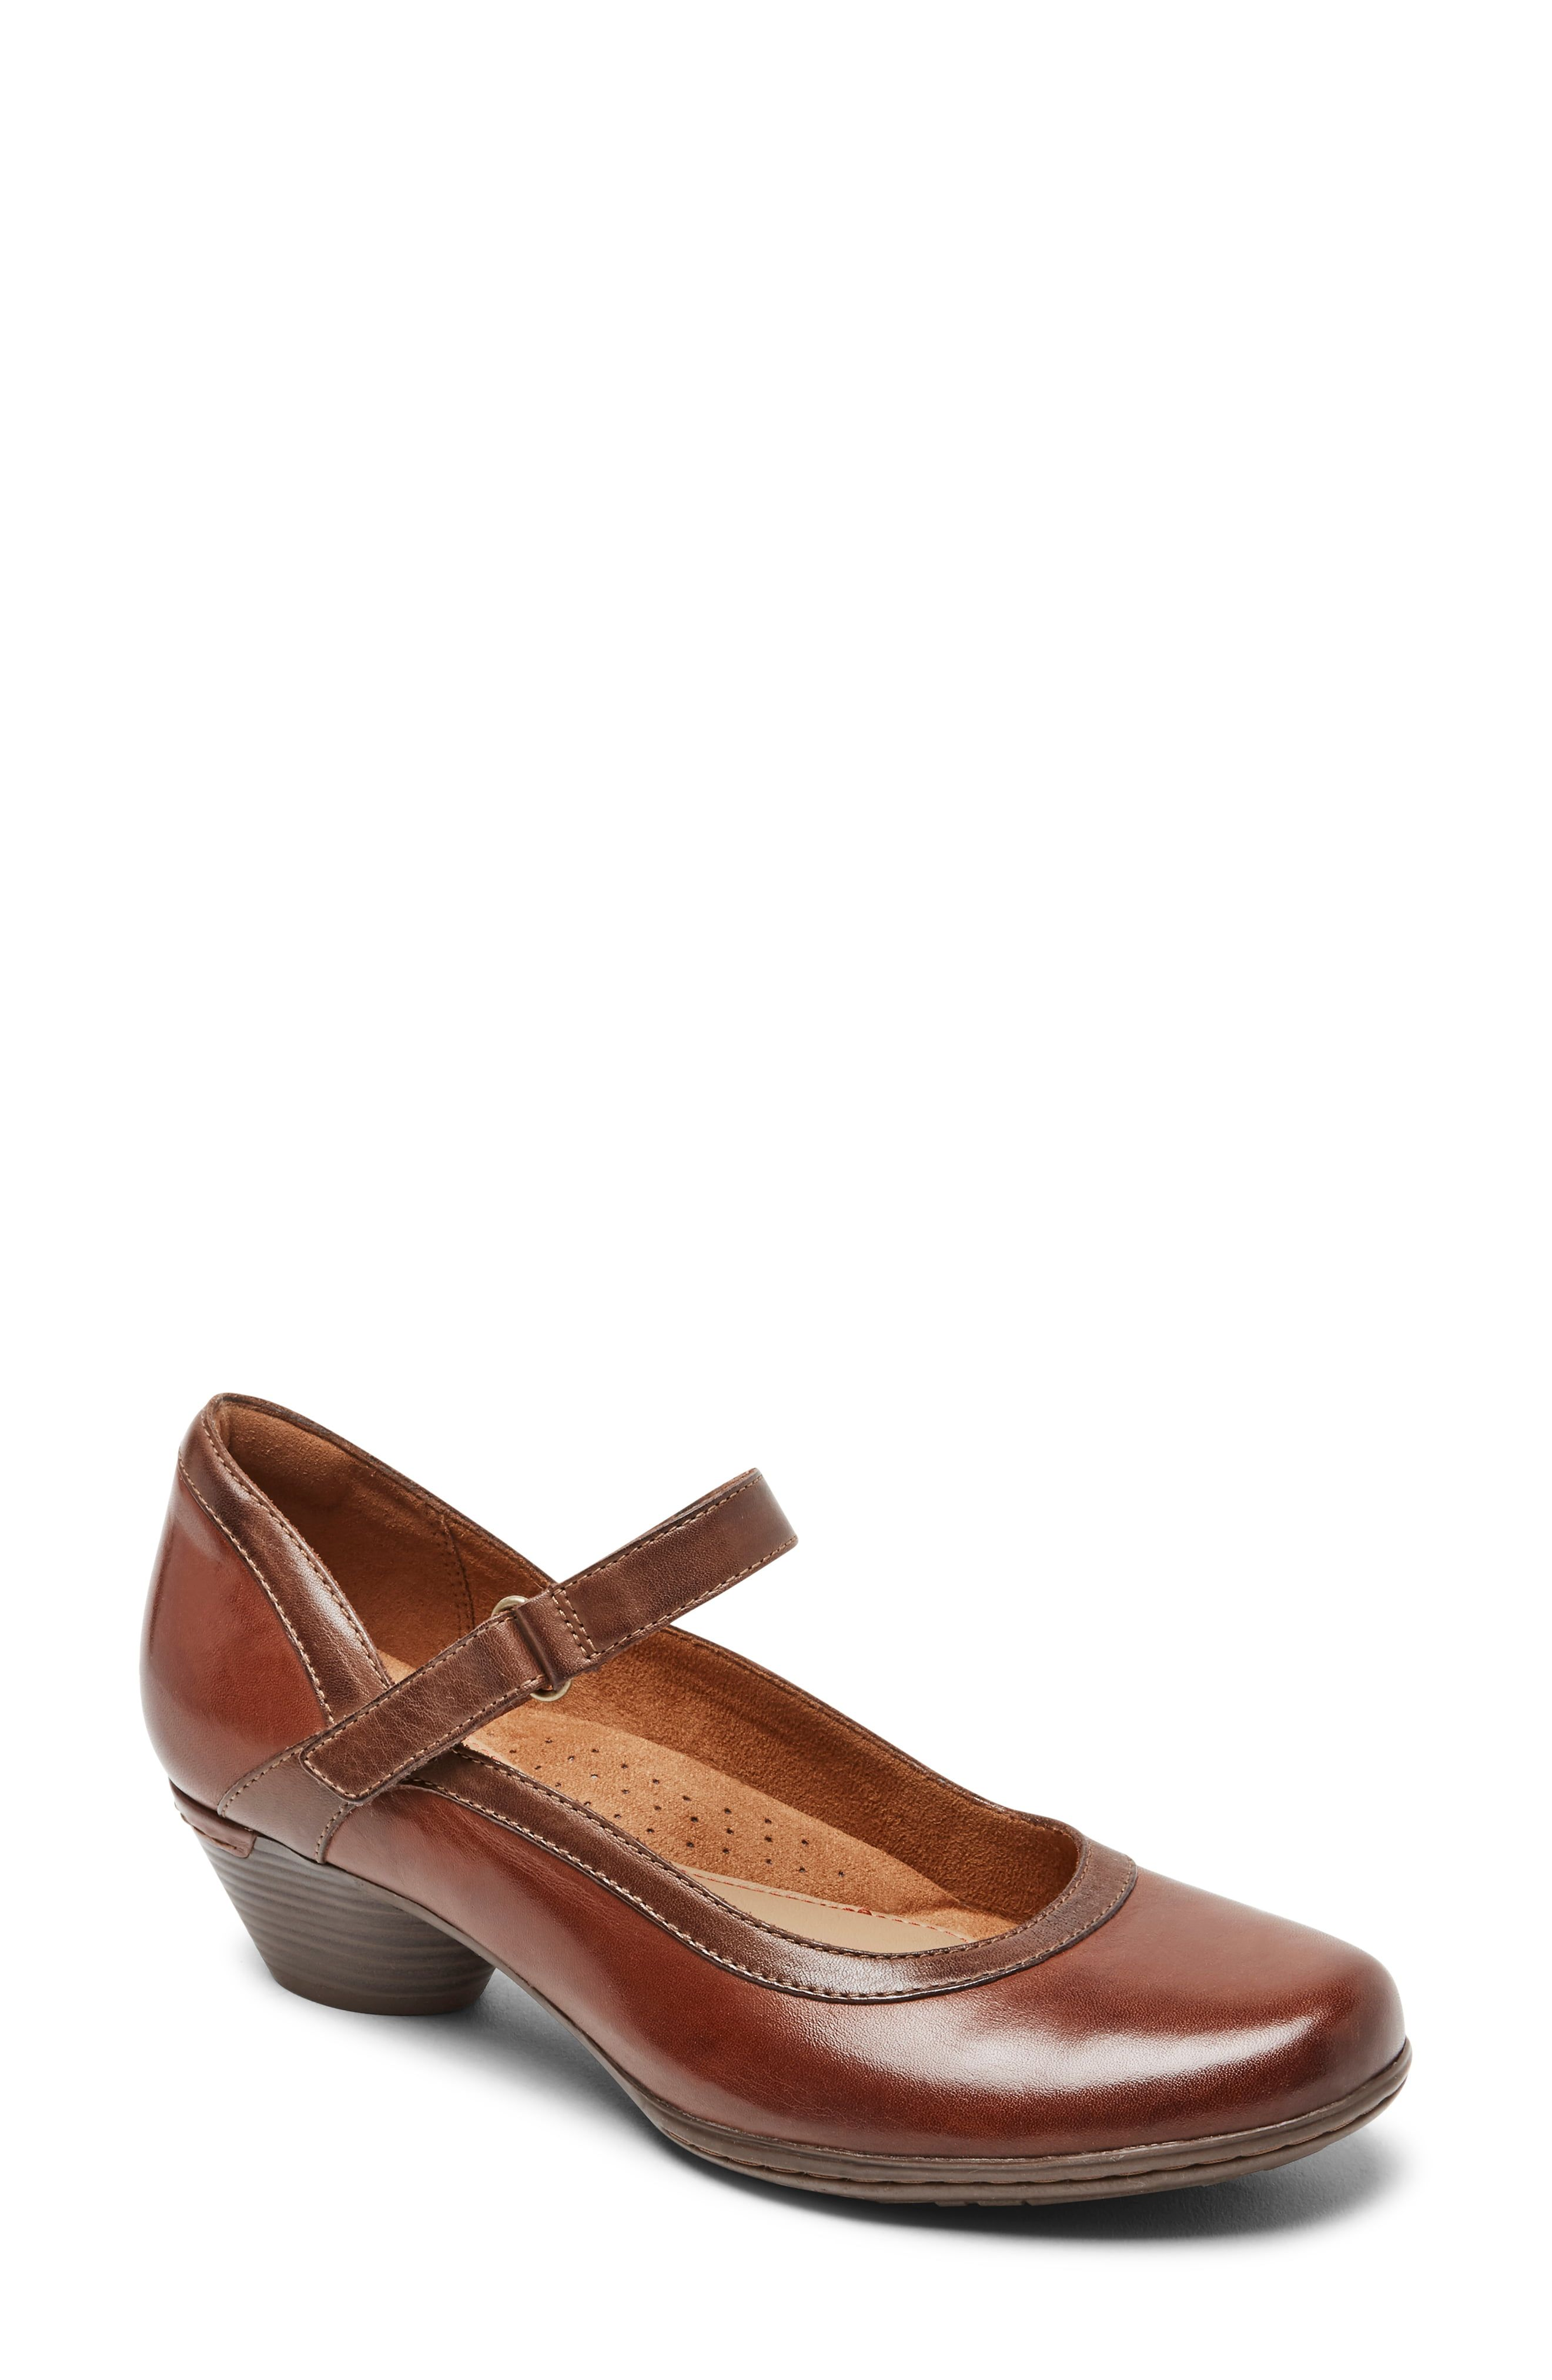 Two-tone detailing accents this secure Mary Jane grounded by a lightly cushioned footbed. Style Name:Rockport Cobb Hill Laurel Mary Jane (Women). Style Number: 6128577. Available in stores.